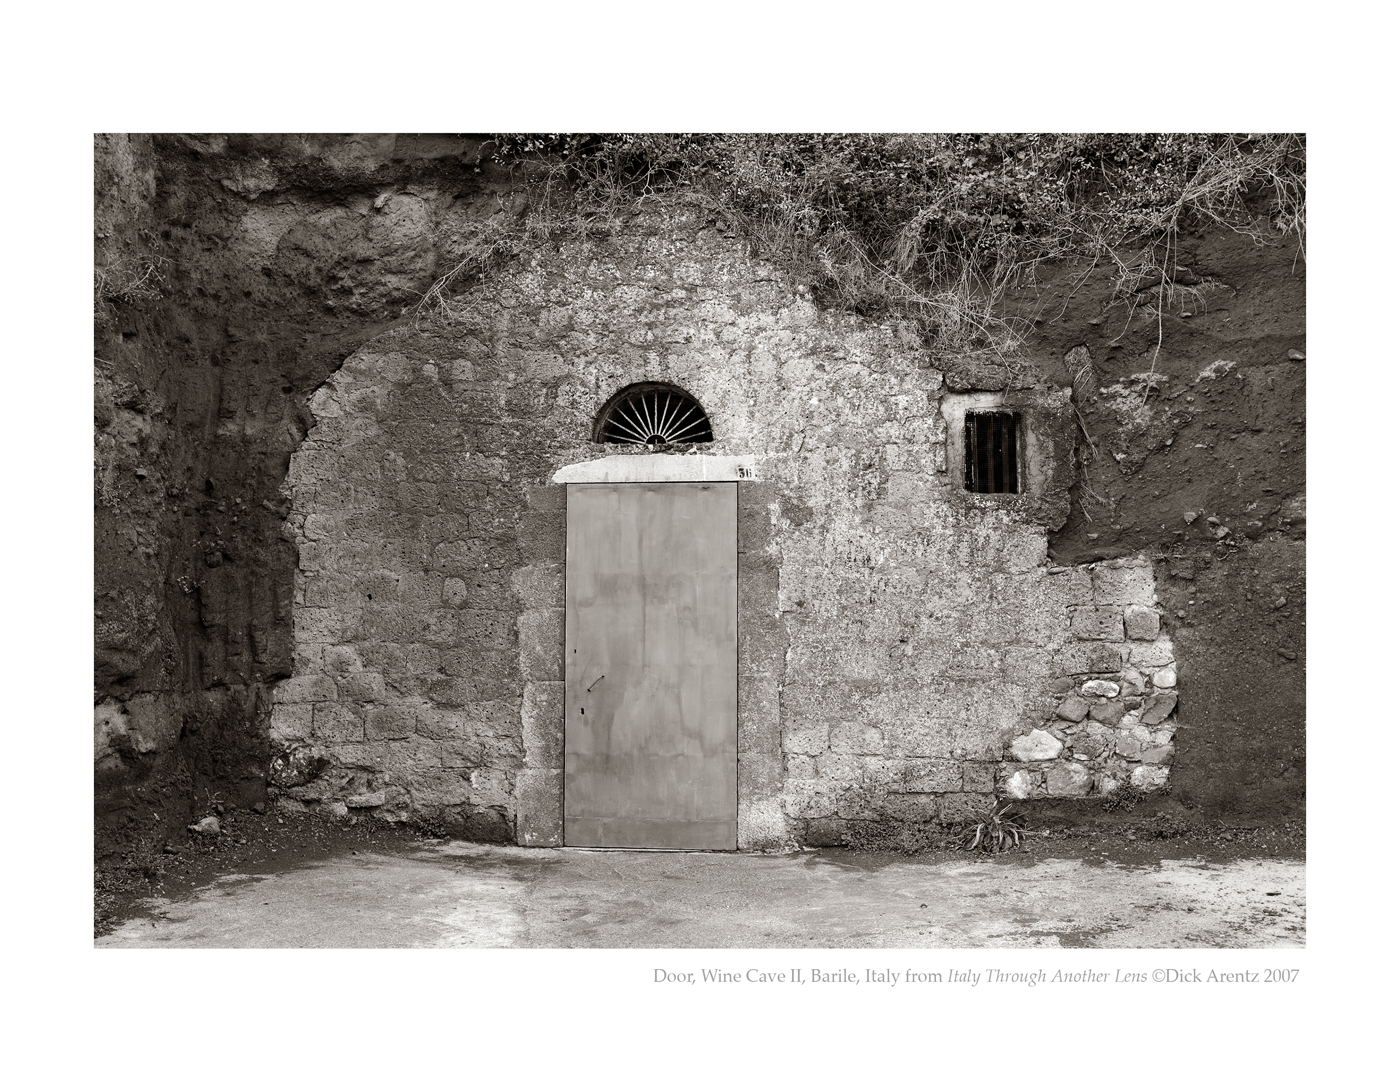 Door, Wine Cave II, Barile, Italy - Italy Through Another Lens